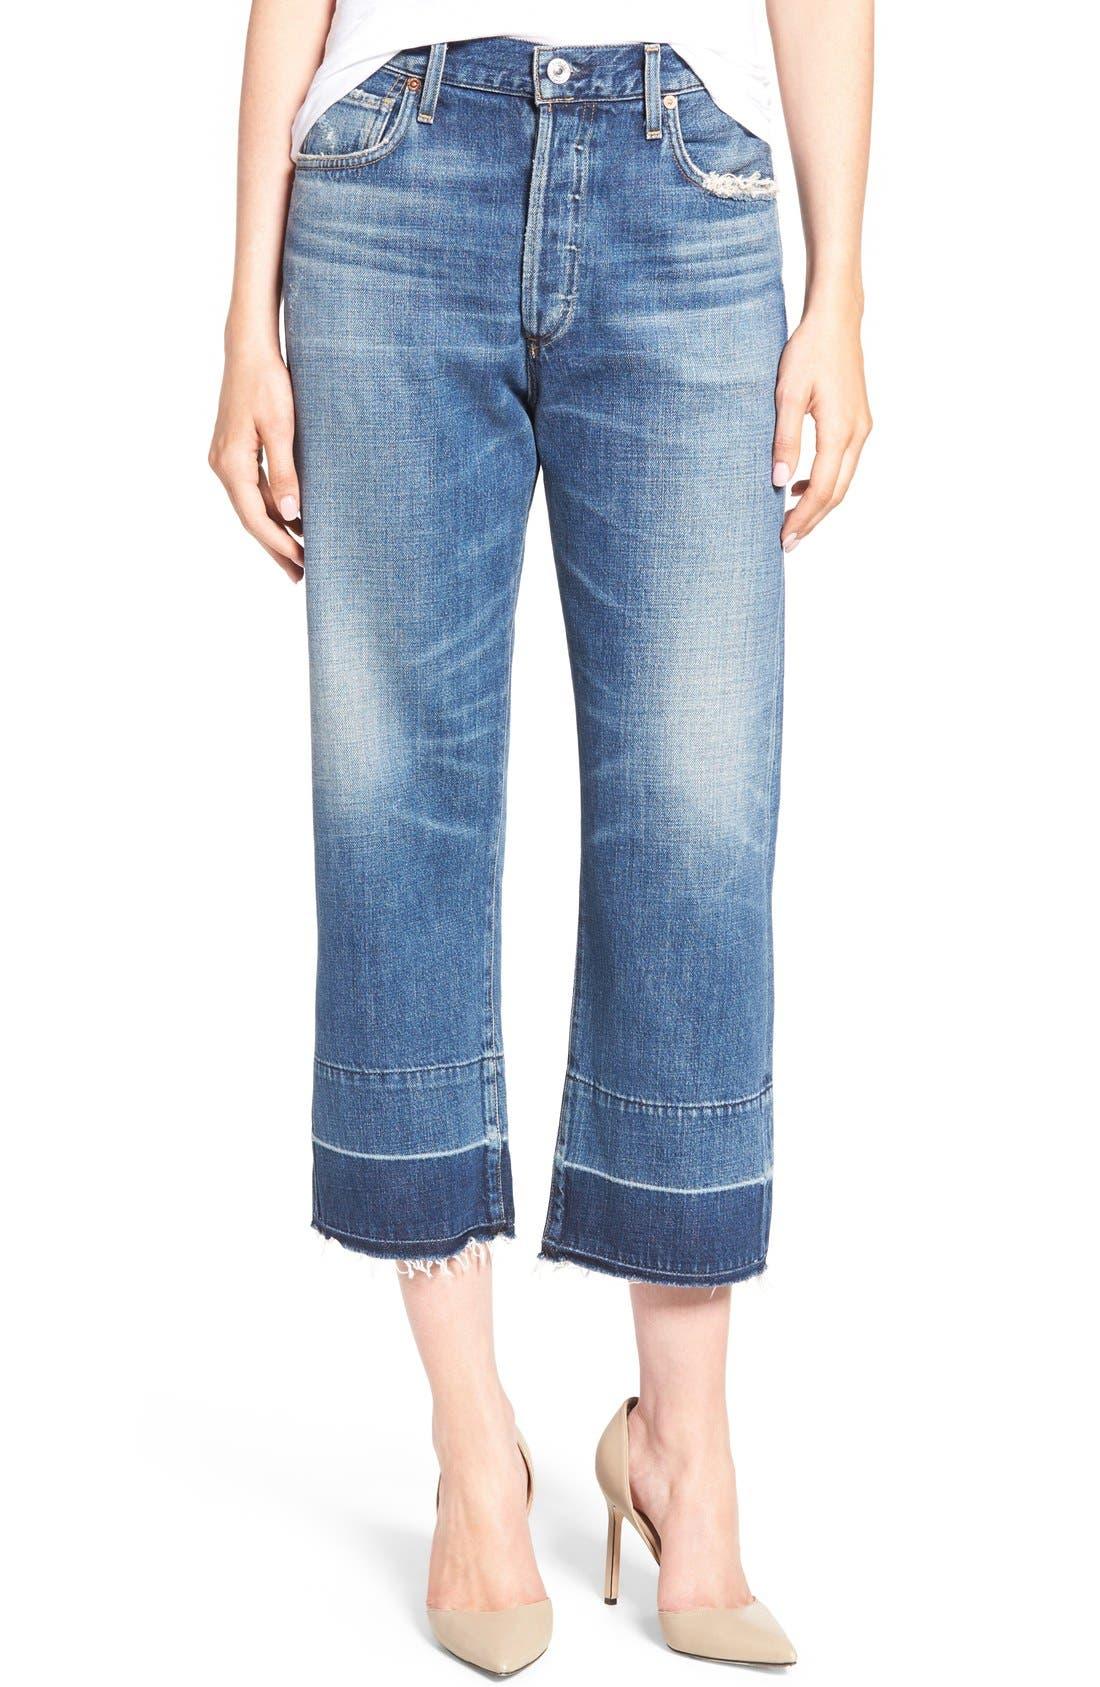 Alternate Image 1 Selected - Citizens of Humanity Cora High Waist Released Hem Boyfriend Jeans (Fade Out)